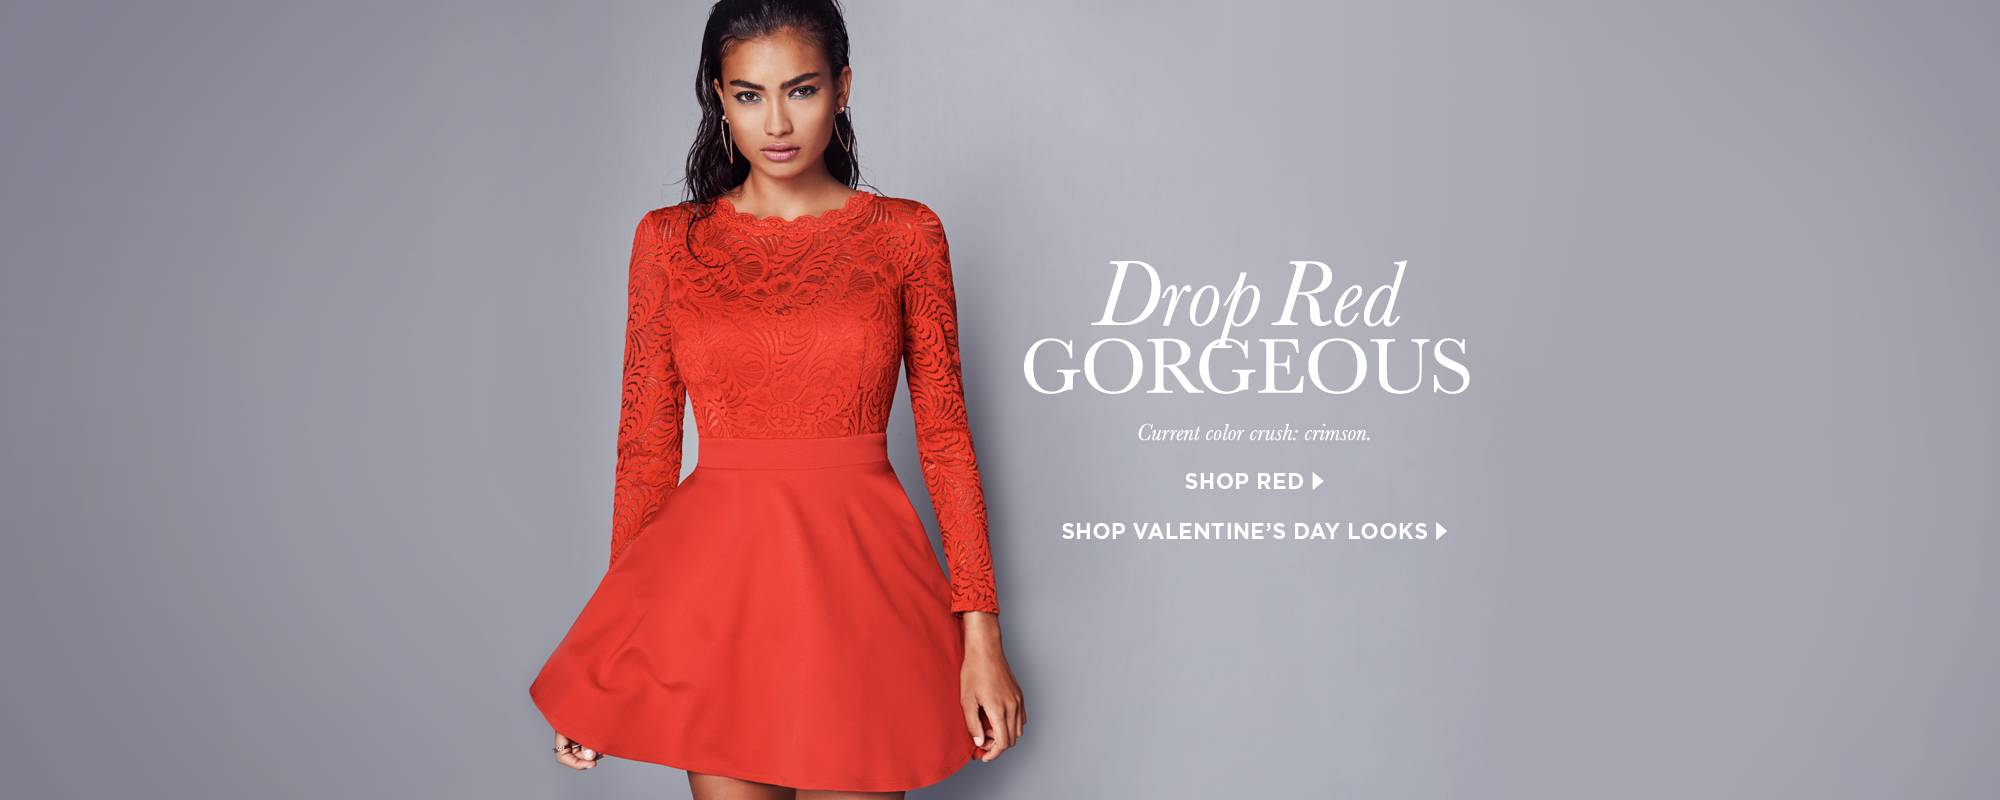 drop red gorgeous, current color crush: crimson. Click here to shop red.